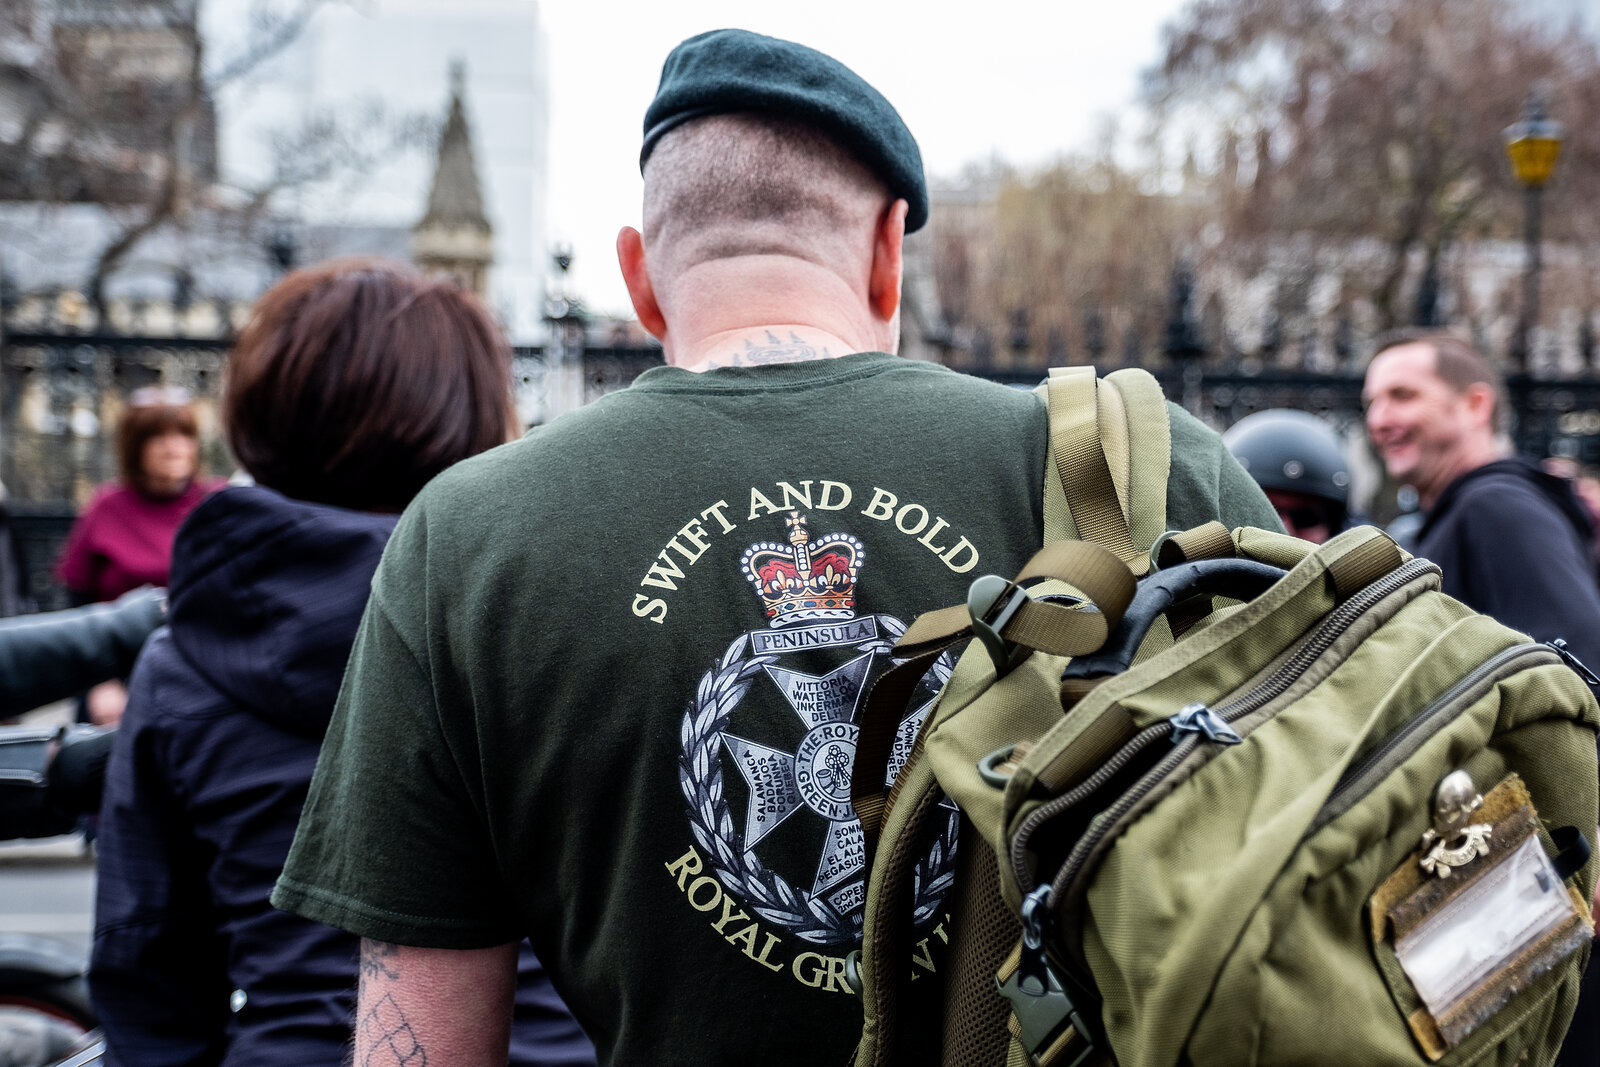 Soldier F Protest London